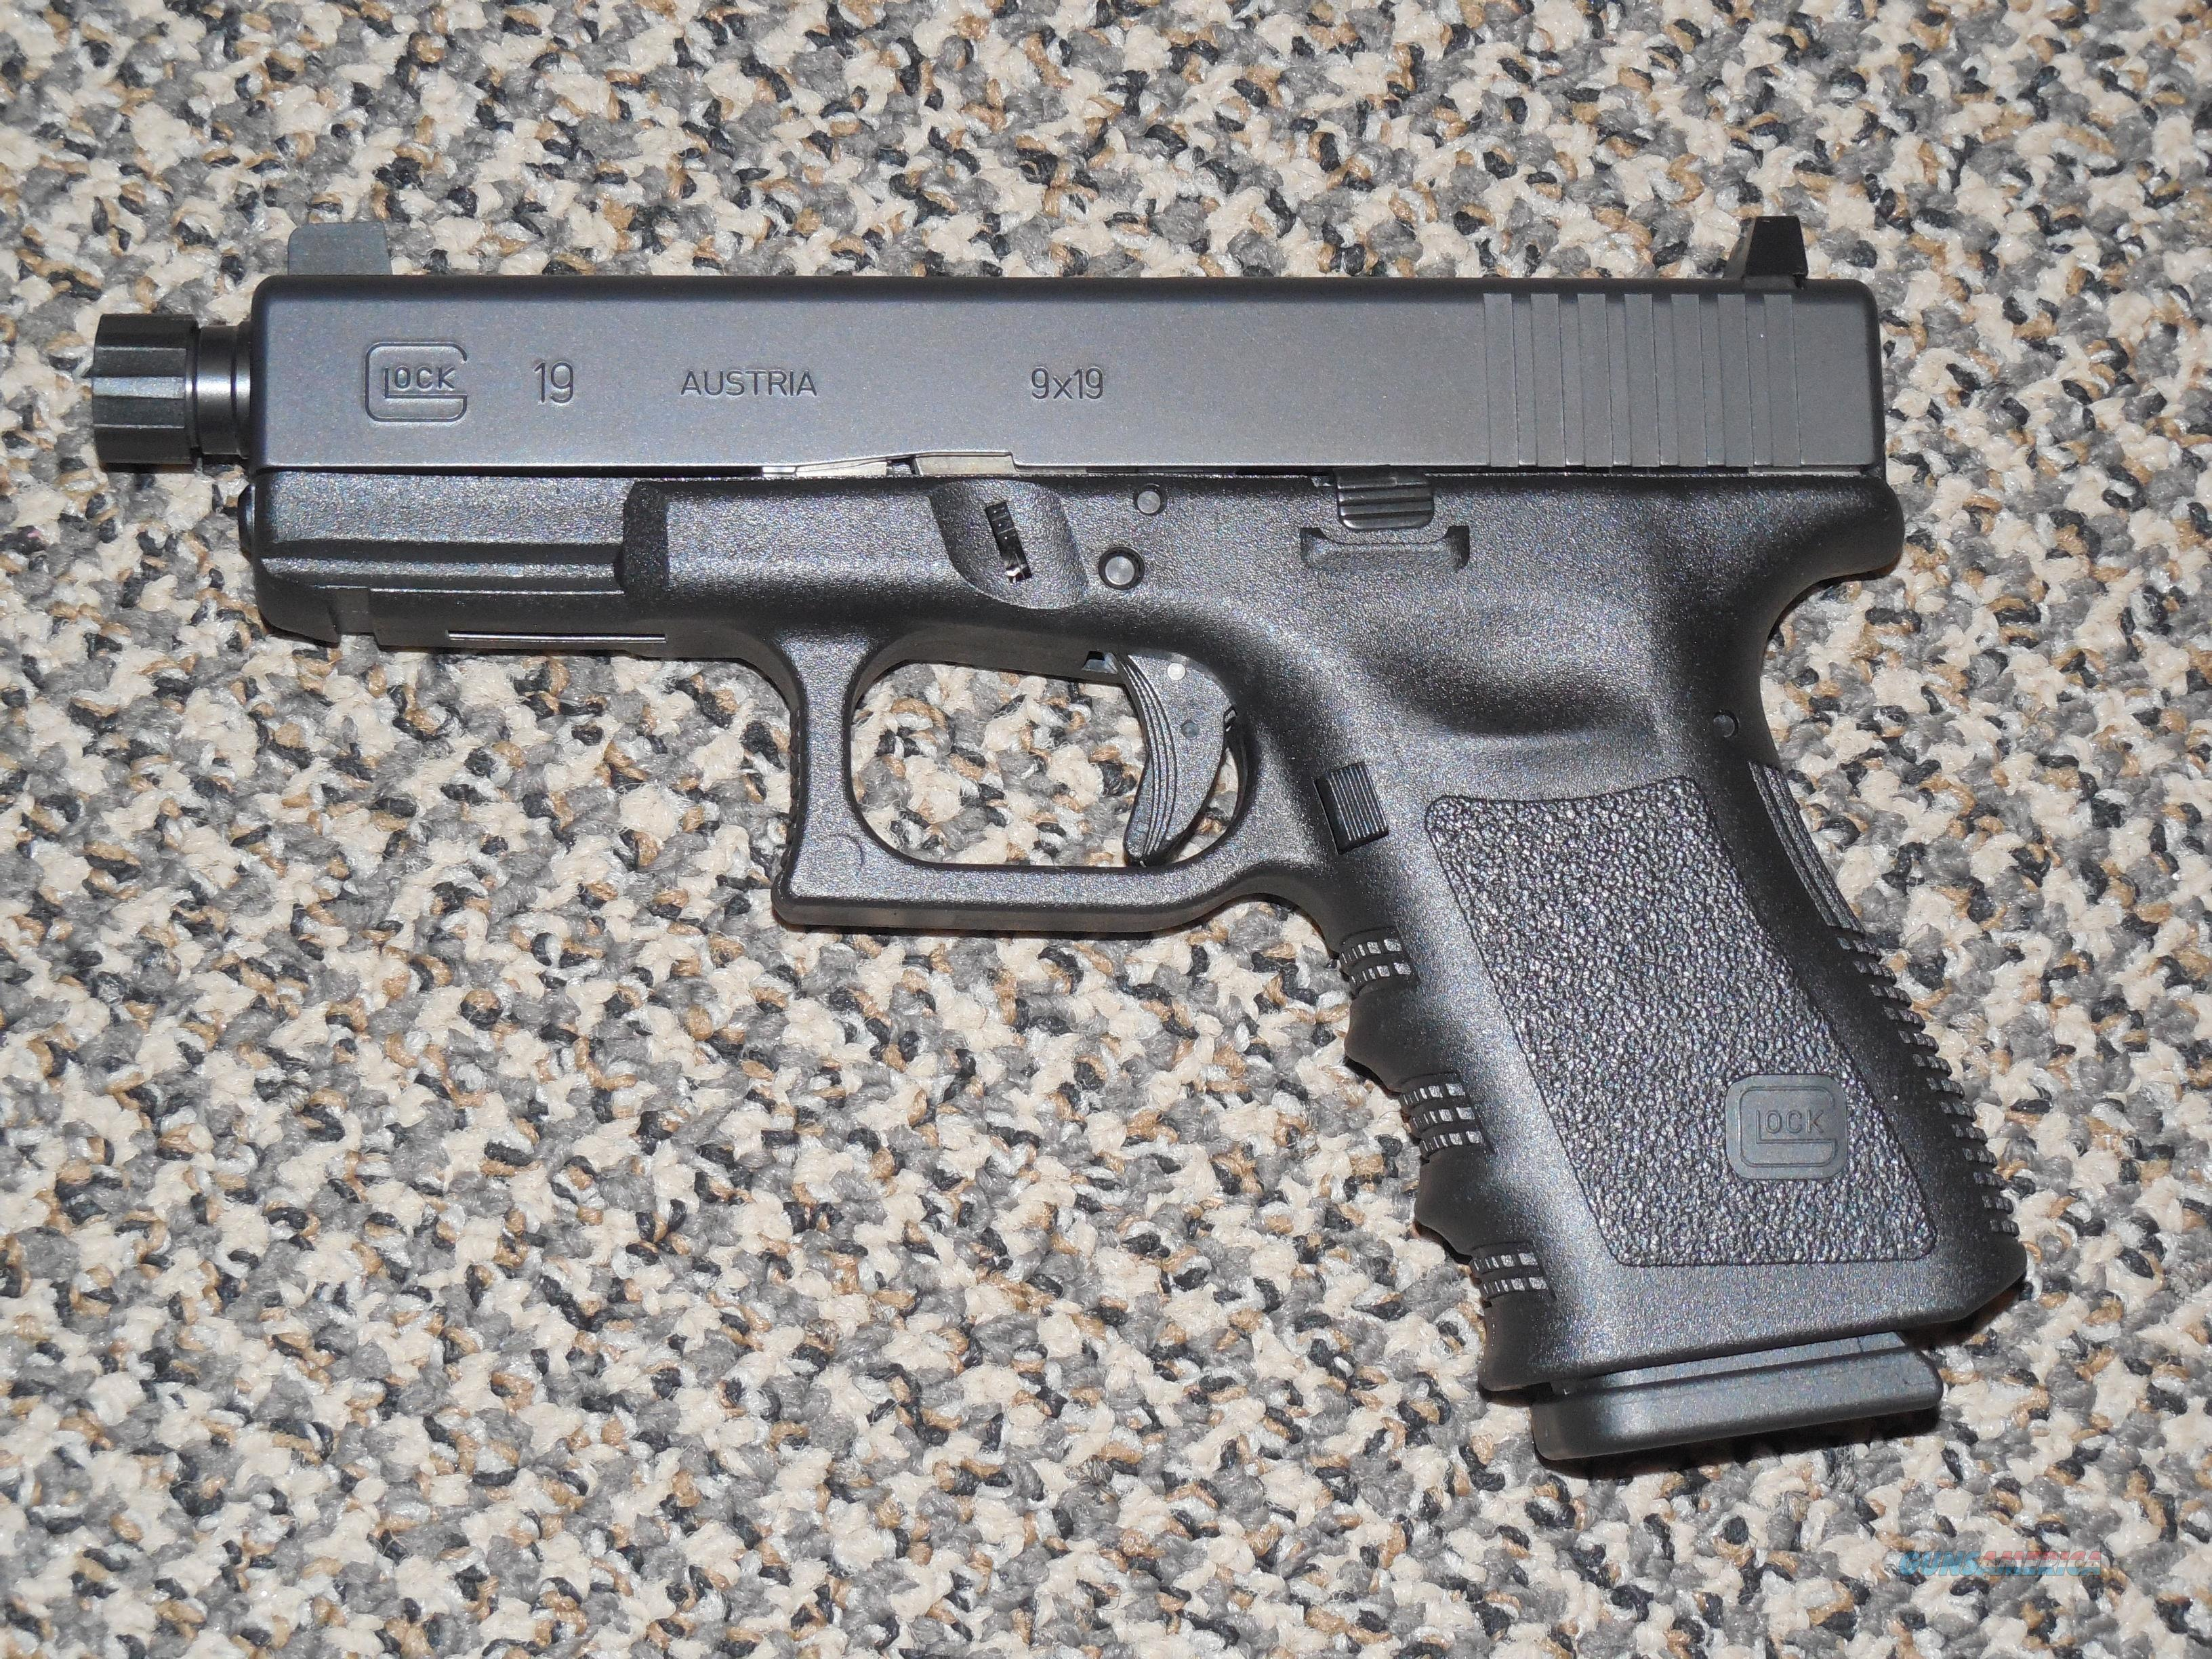 GLOCK MODEL 19 THREADED BARREL 9 mm 3RD GEN  Guns > Pistols > Glock Pistols > 19